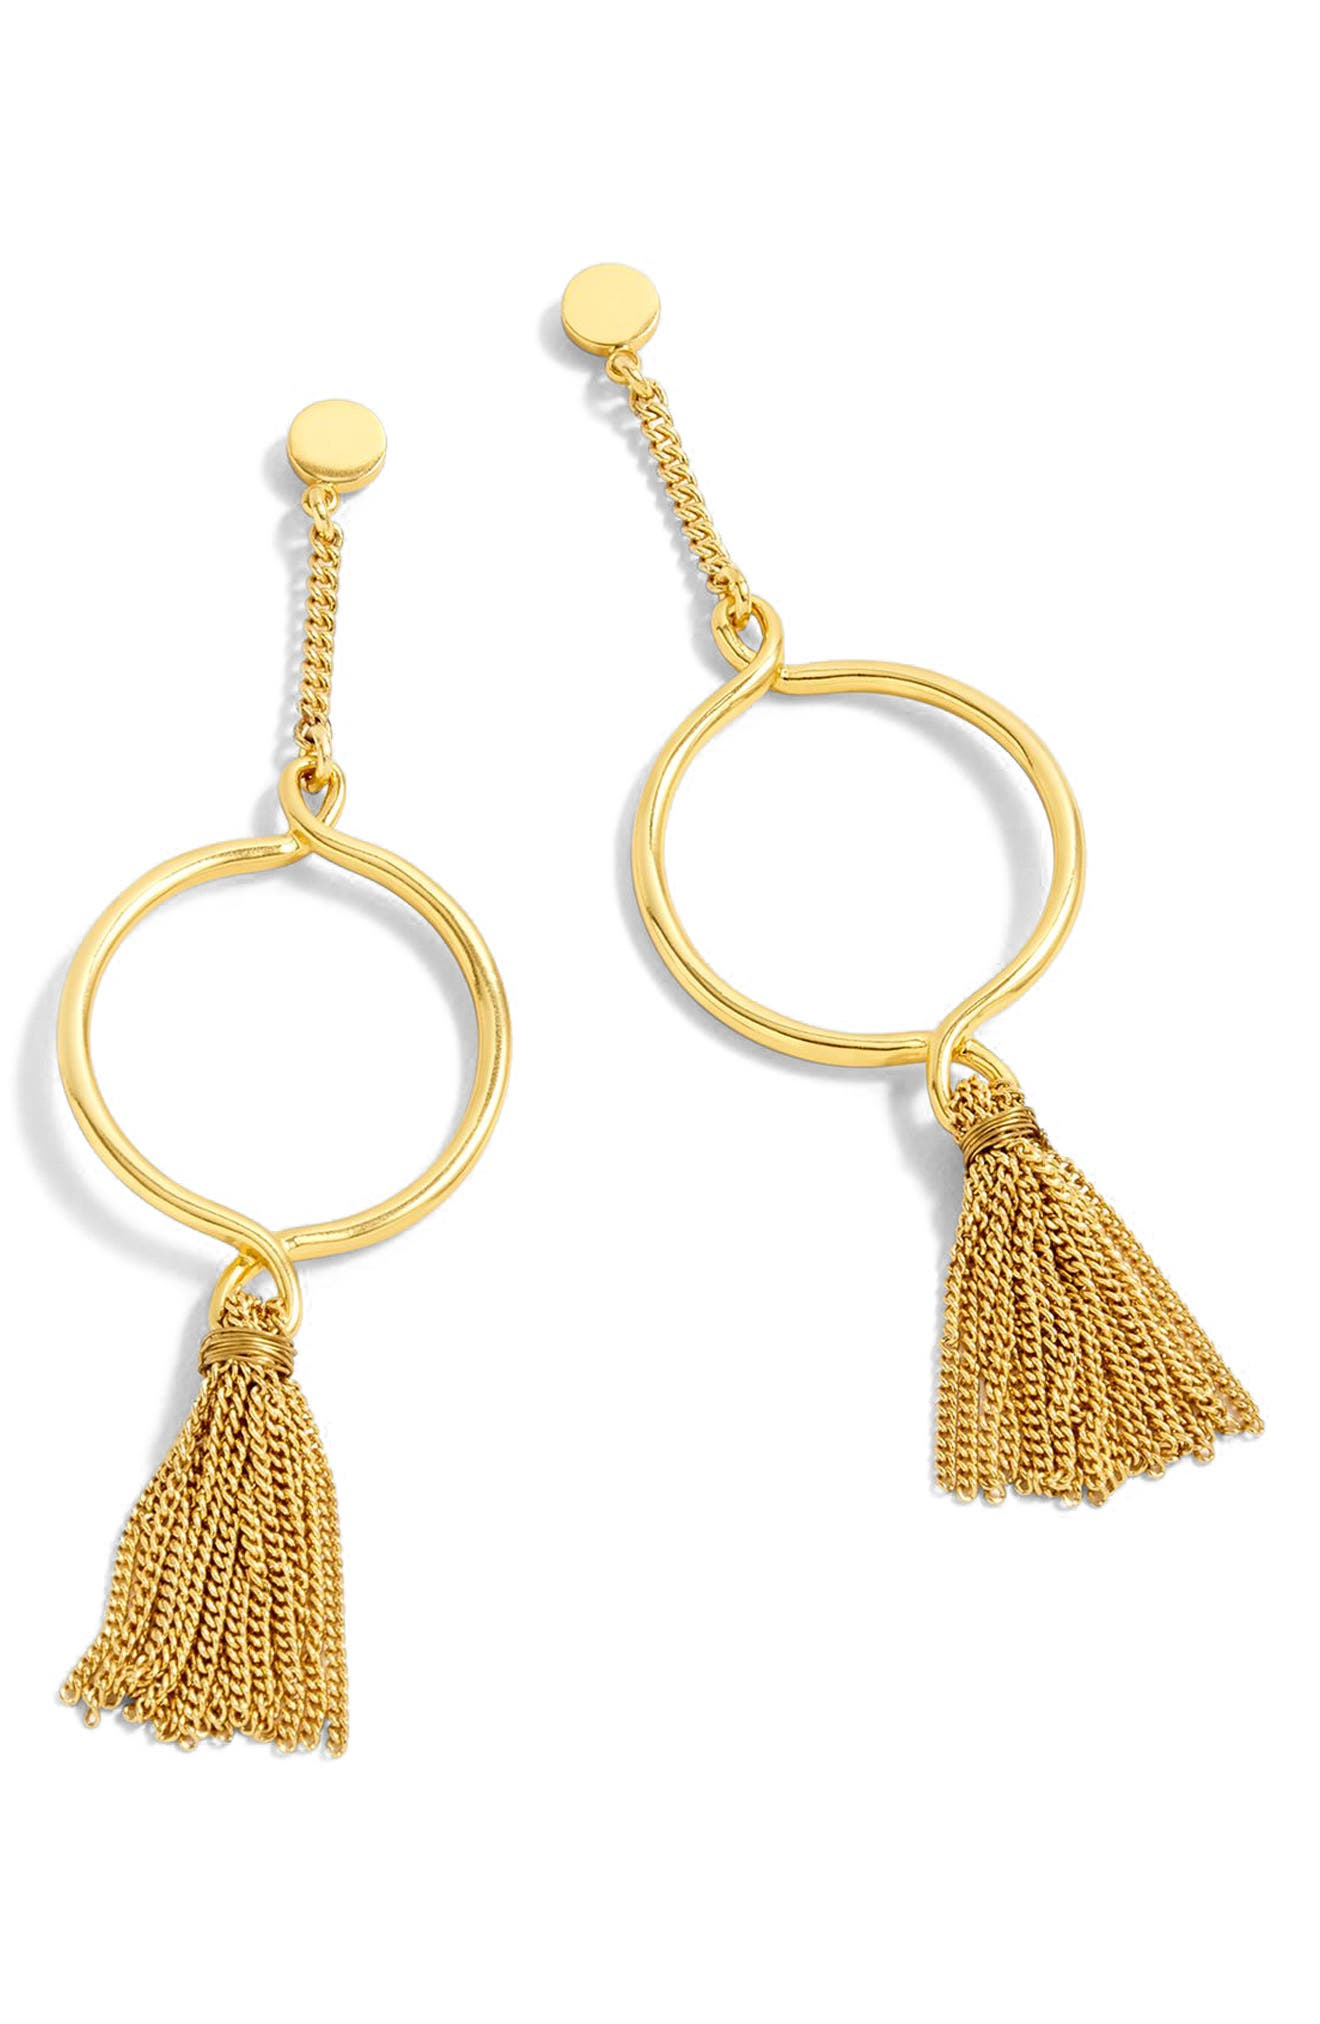 J.Crew Hanging Hoop Broom Earrings